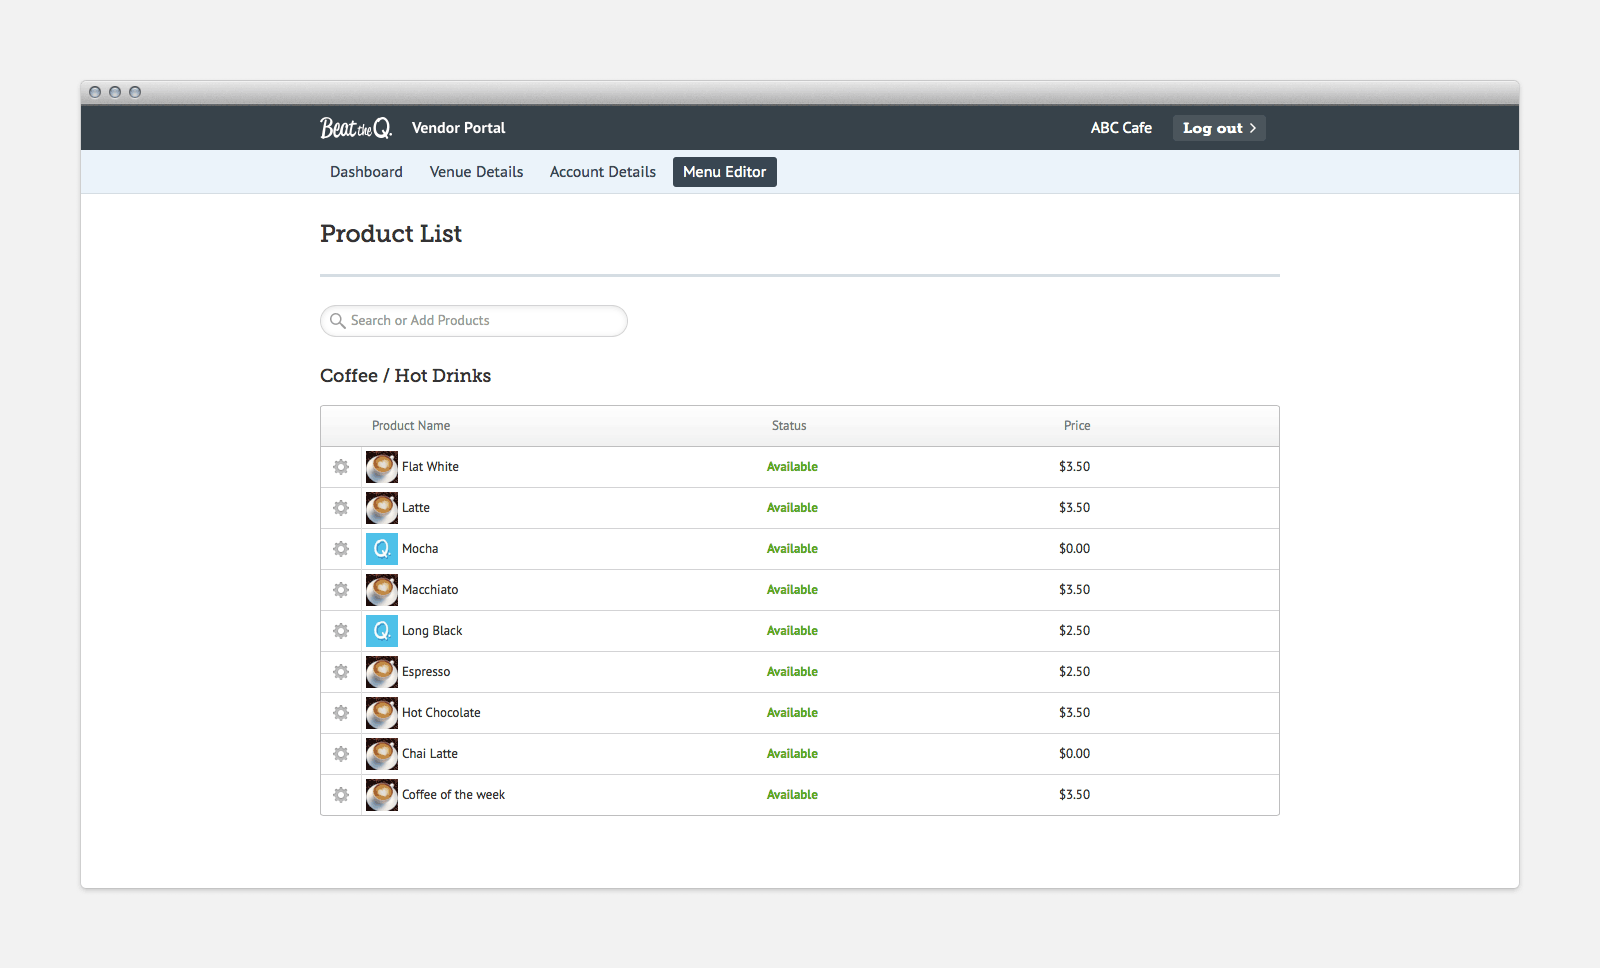 Vendor portal product list.